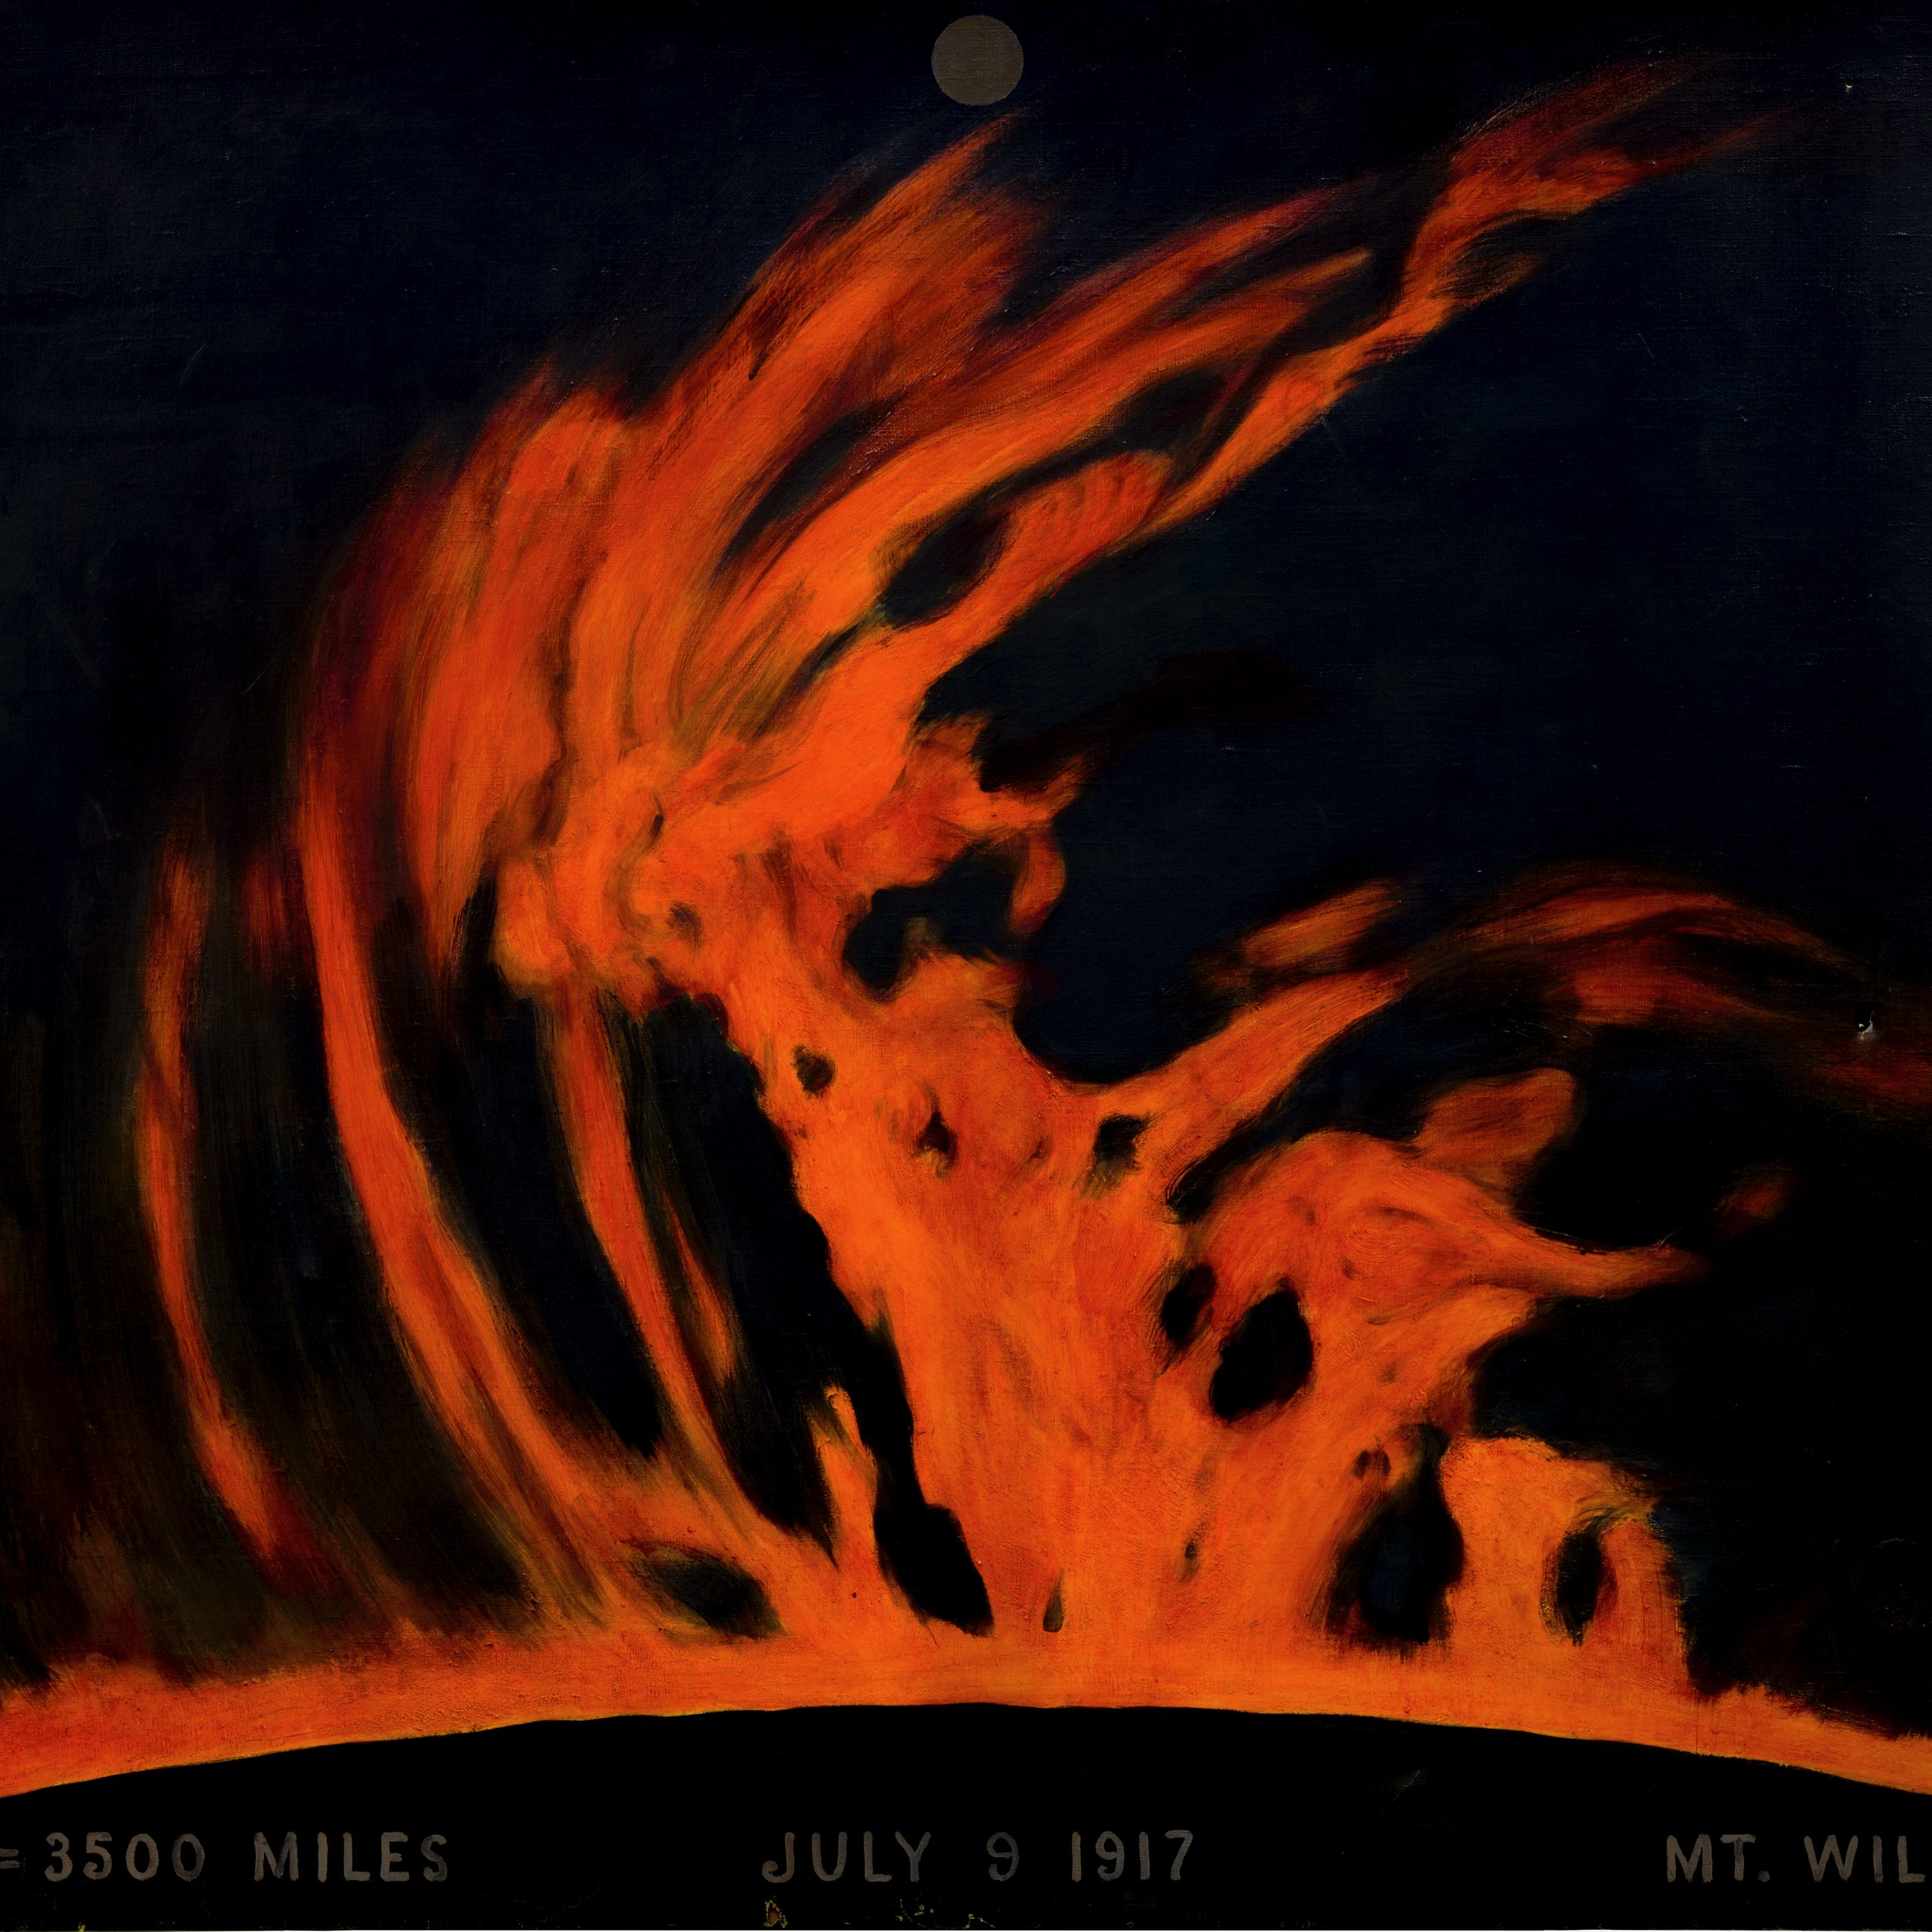 Painting of chromosphere of sun, from Mt. Wilson, July 9, 1917